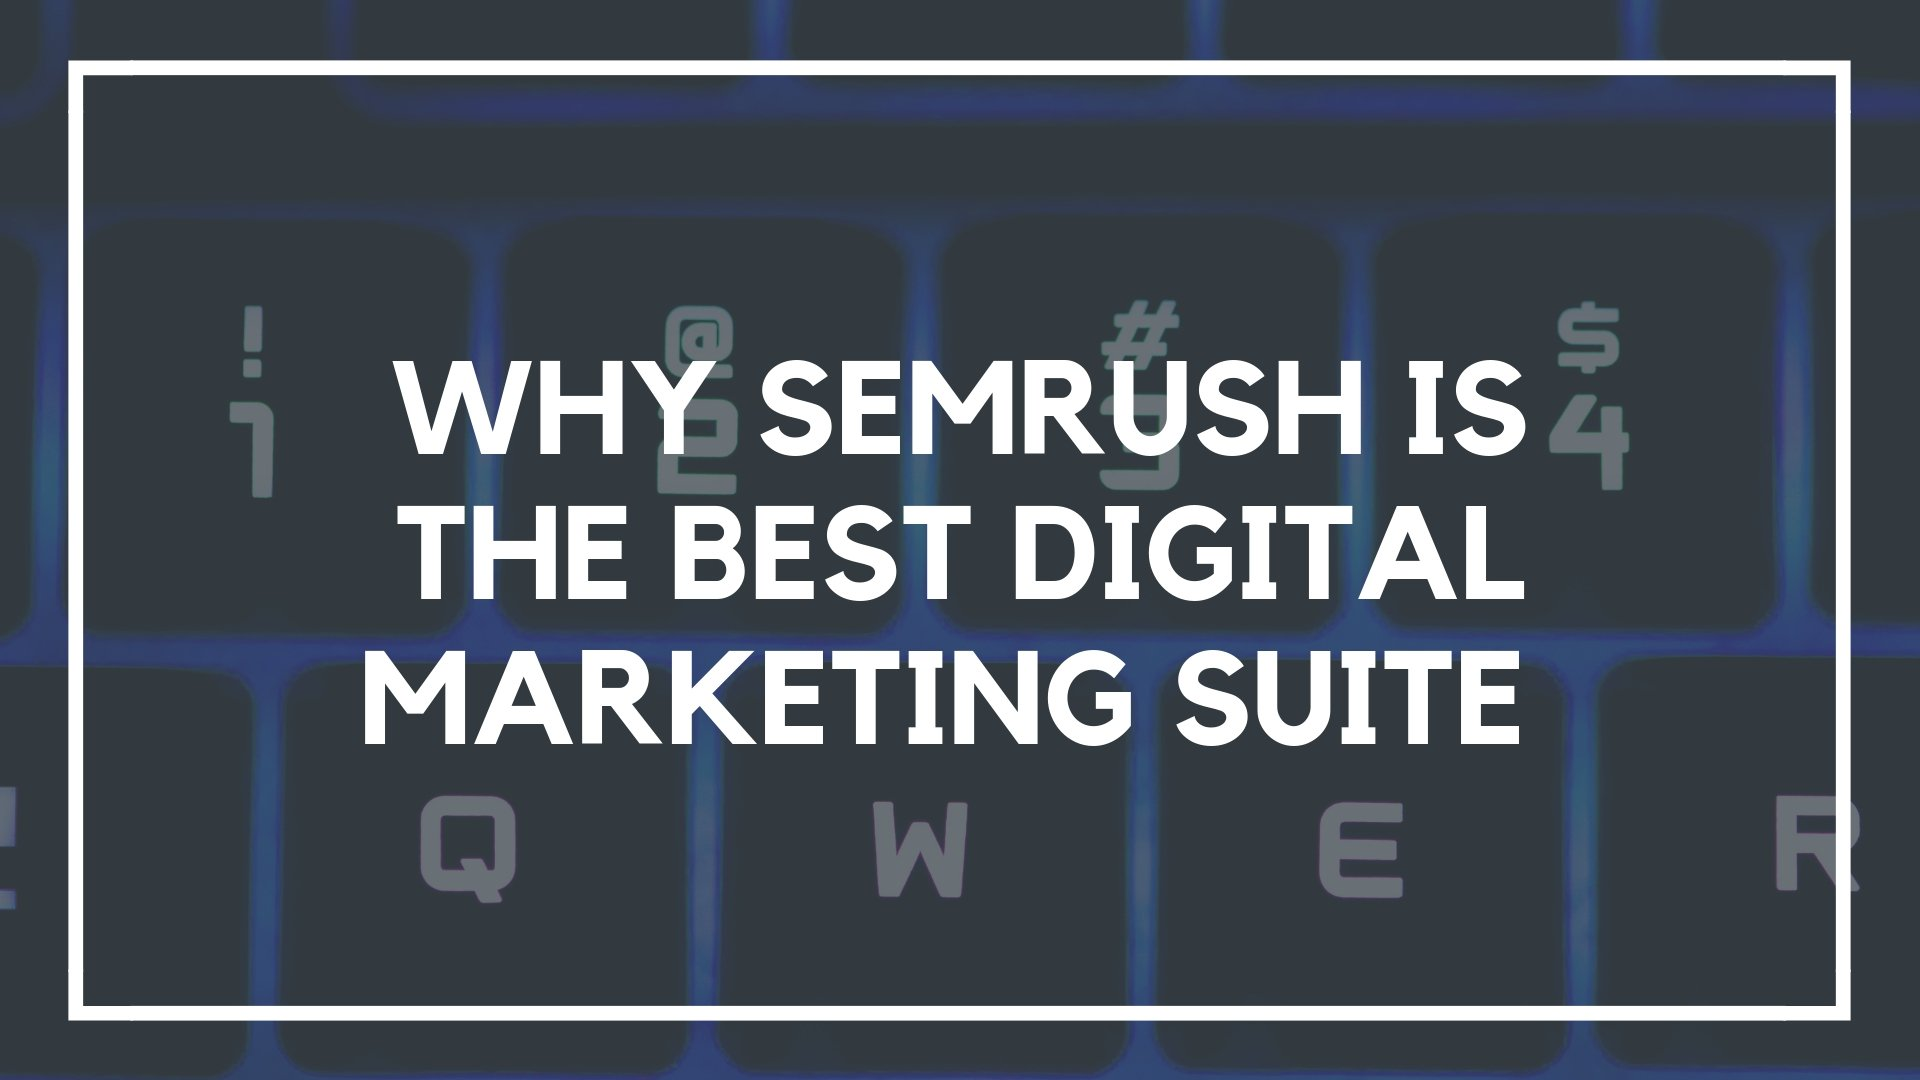 Does SEMrush Totally Suck? An SEMrush Review from a Real User